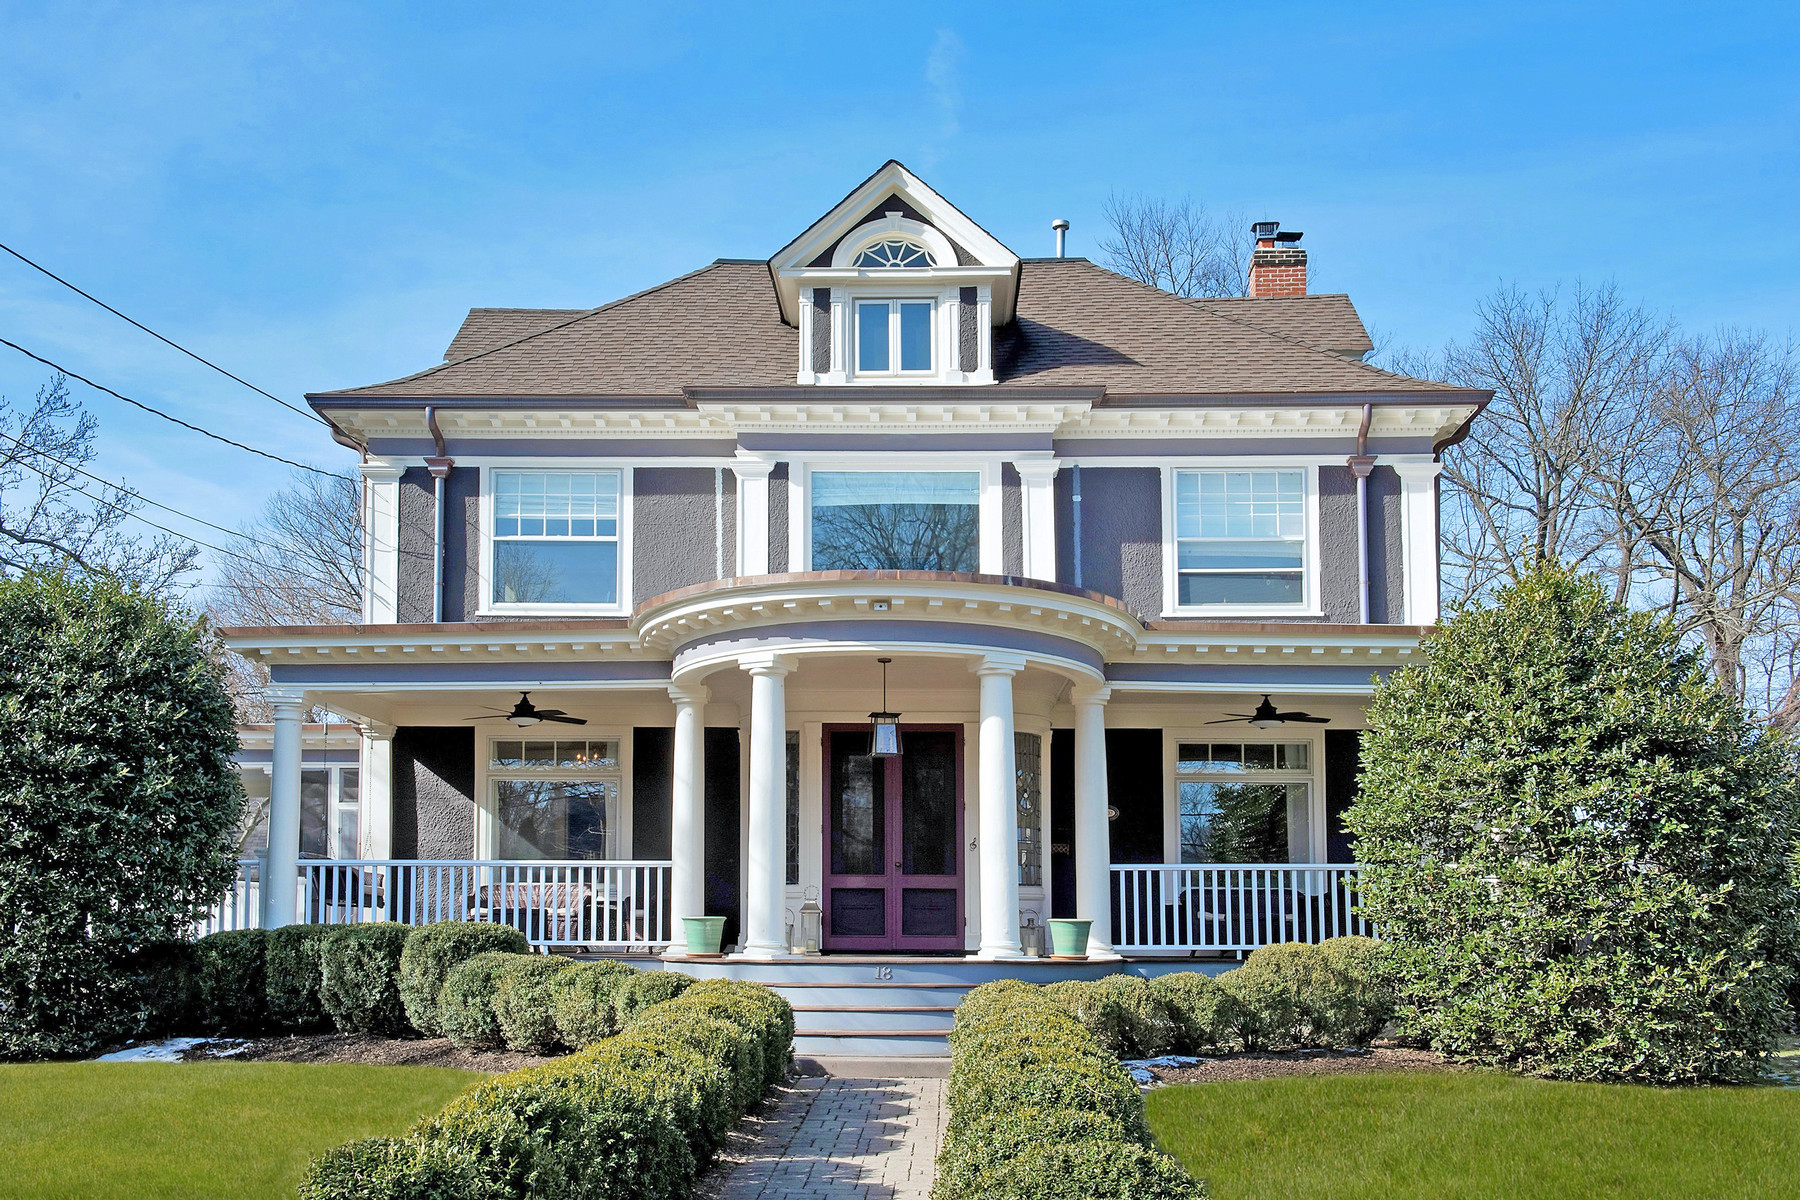 Property for Sale at 1904 Classic Revival Colonial 18 Hobart Avenue, Summit, New Jersey 07901 United States